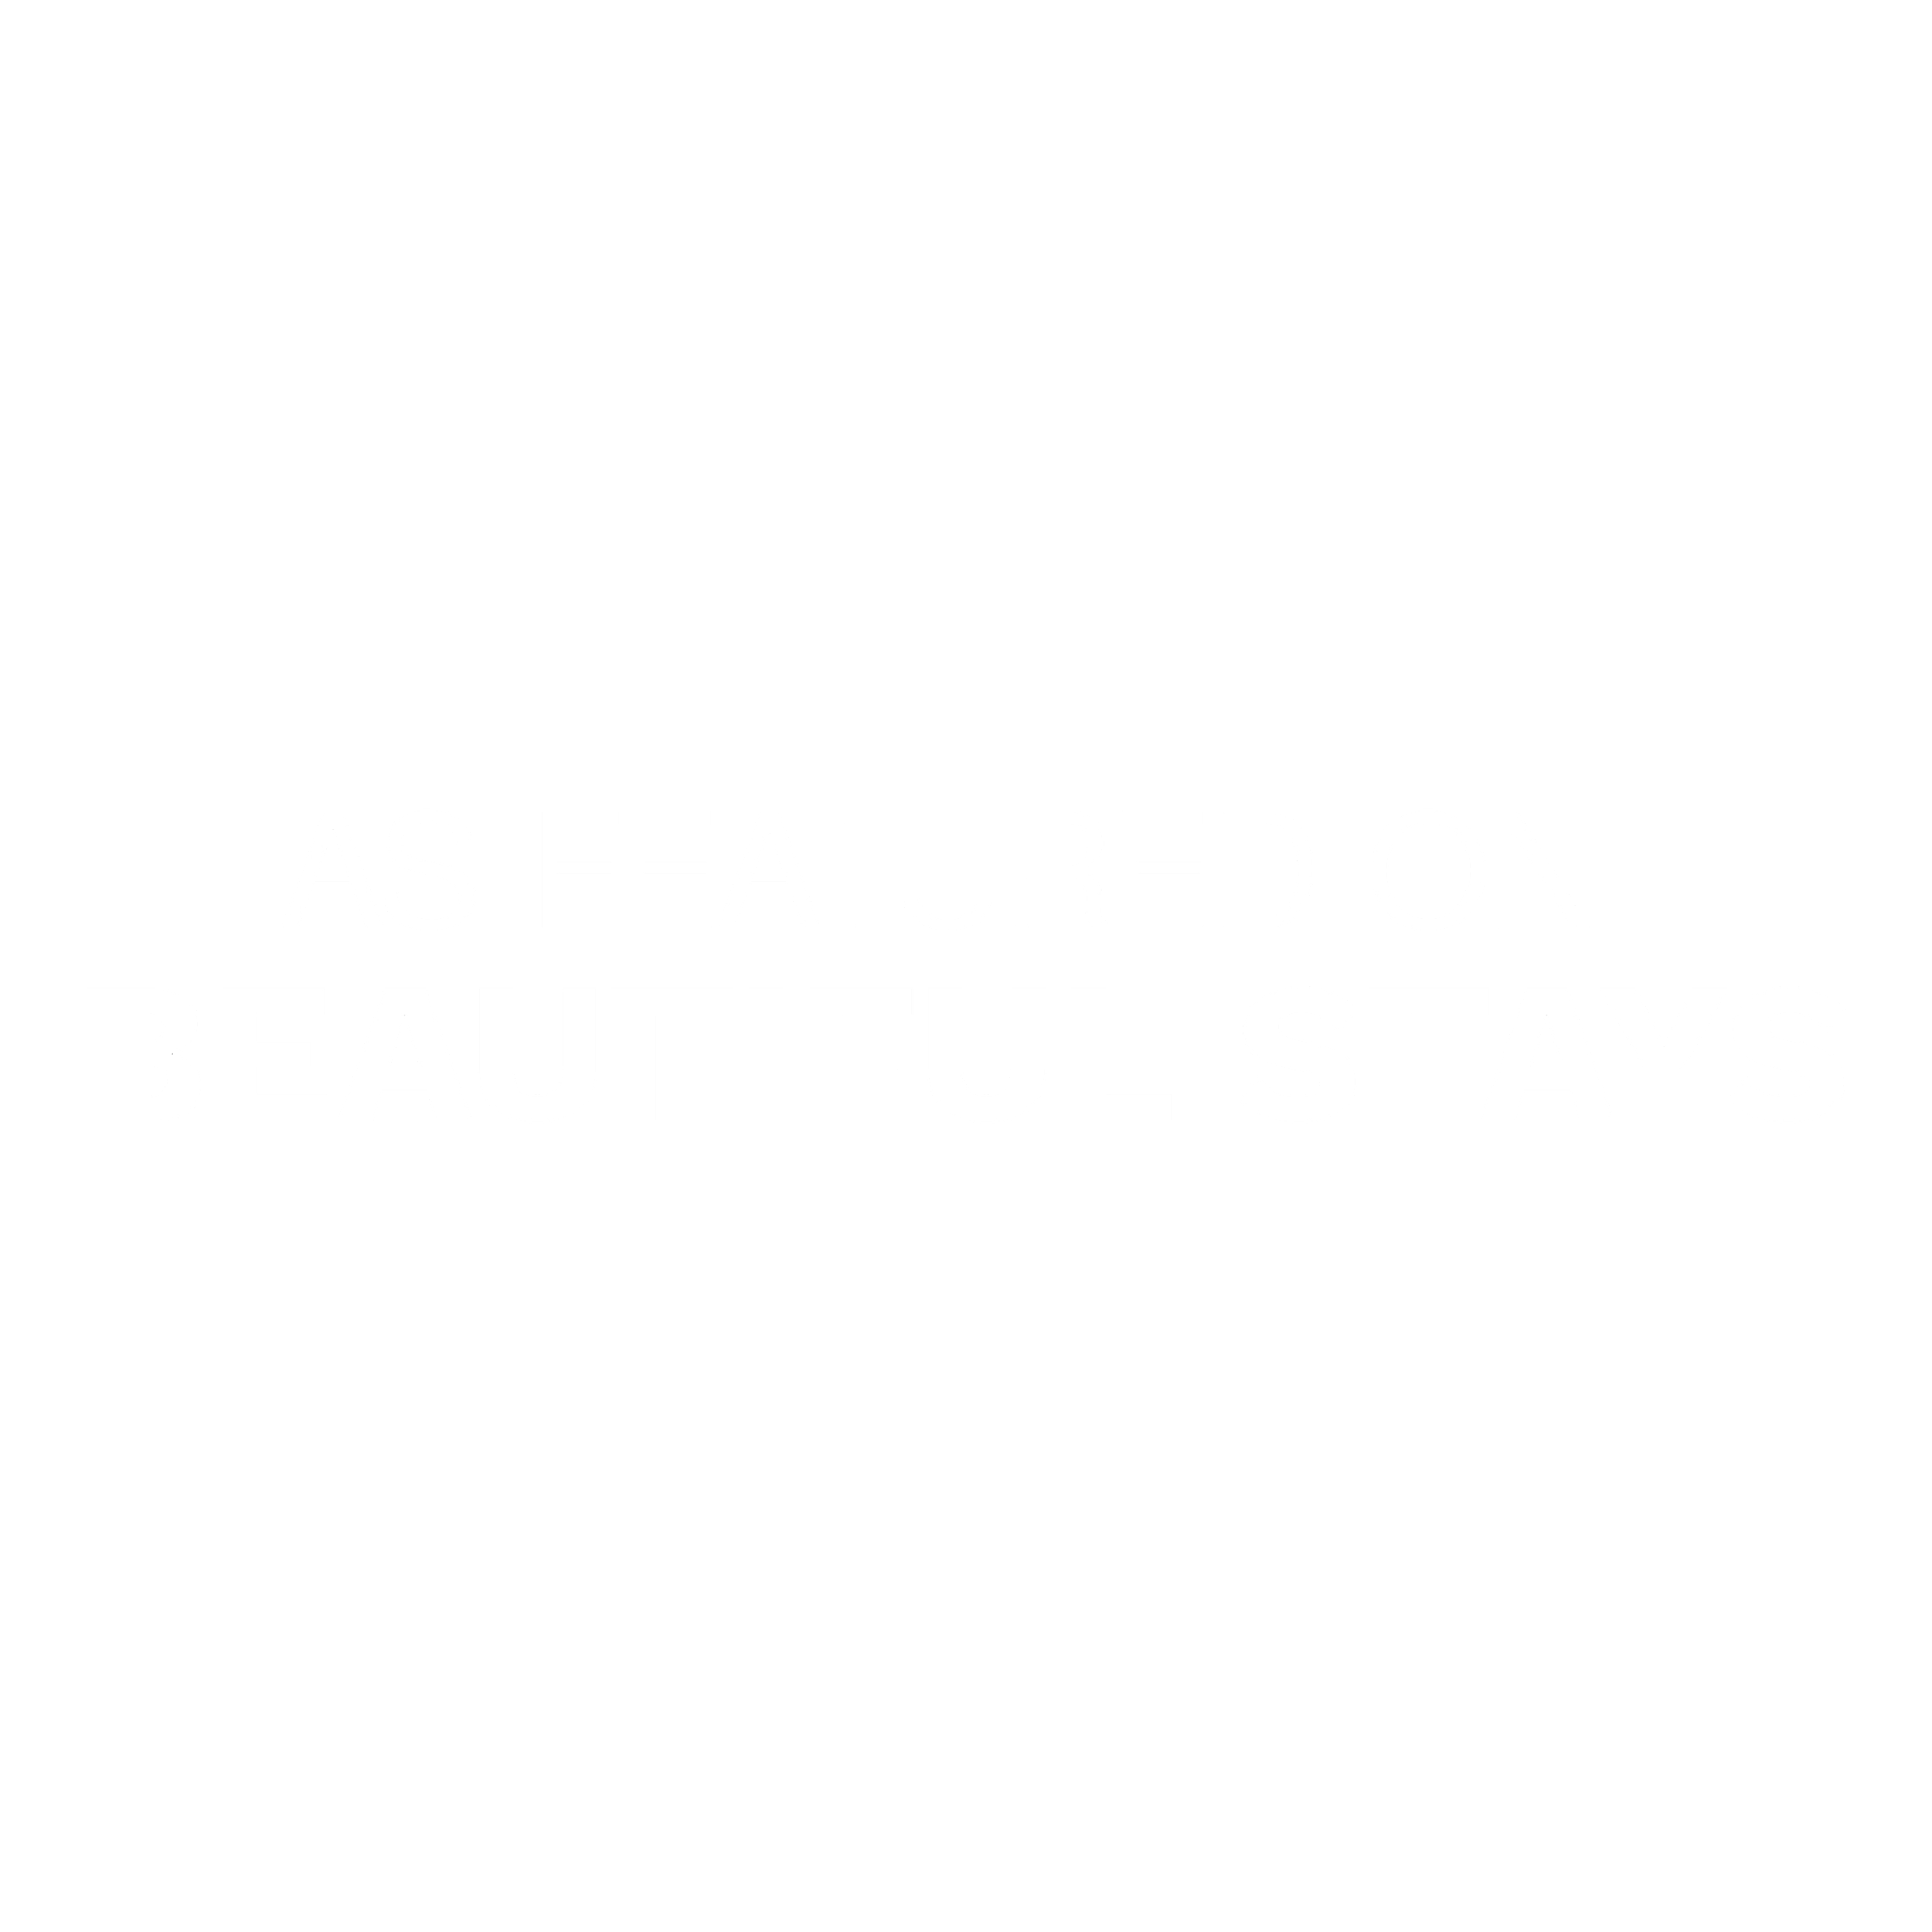 beautiful stays_v2.png